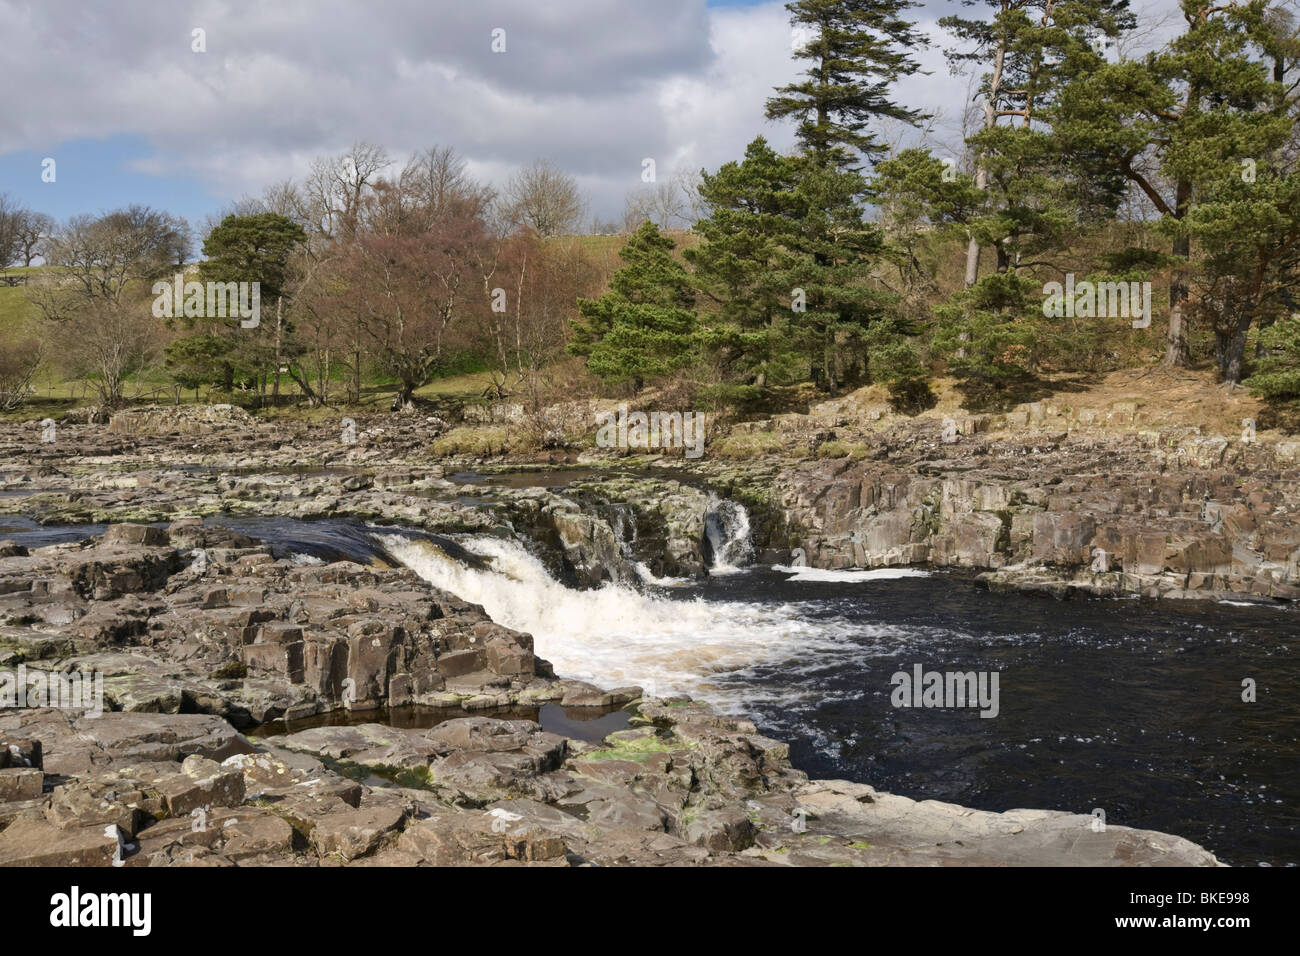 Low Force, Upper Teesdale, UK - Stock Image